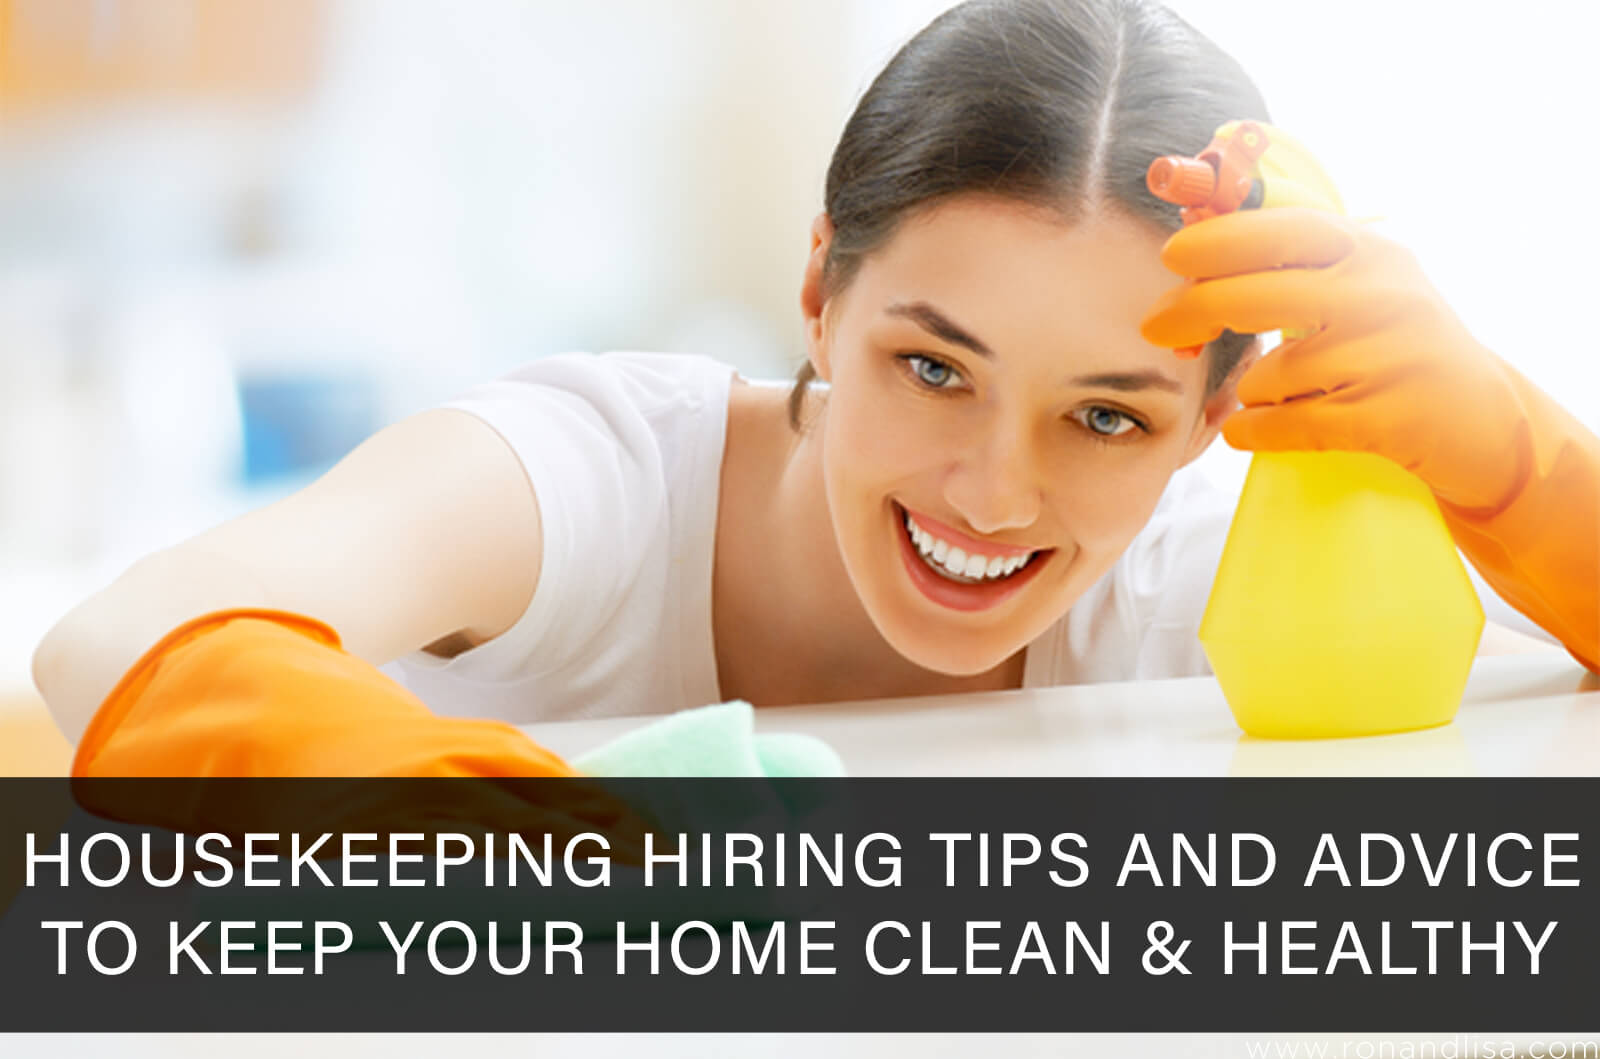 Housekeeping Hiring Tips and Advice to Keep Your Home Clean & Healthy